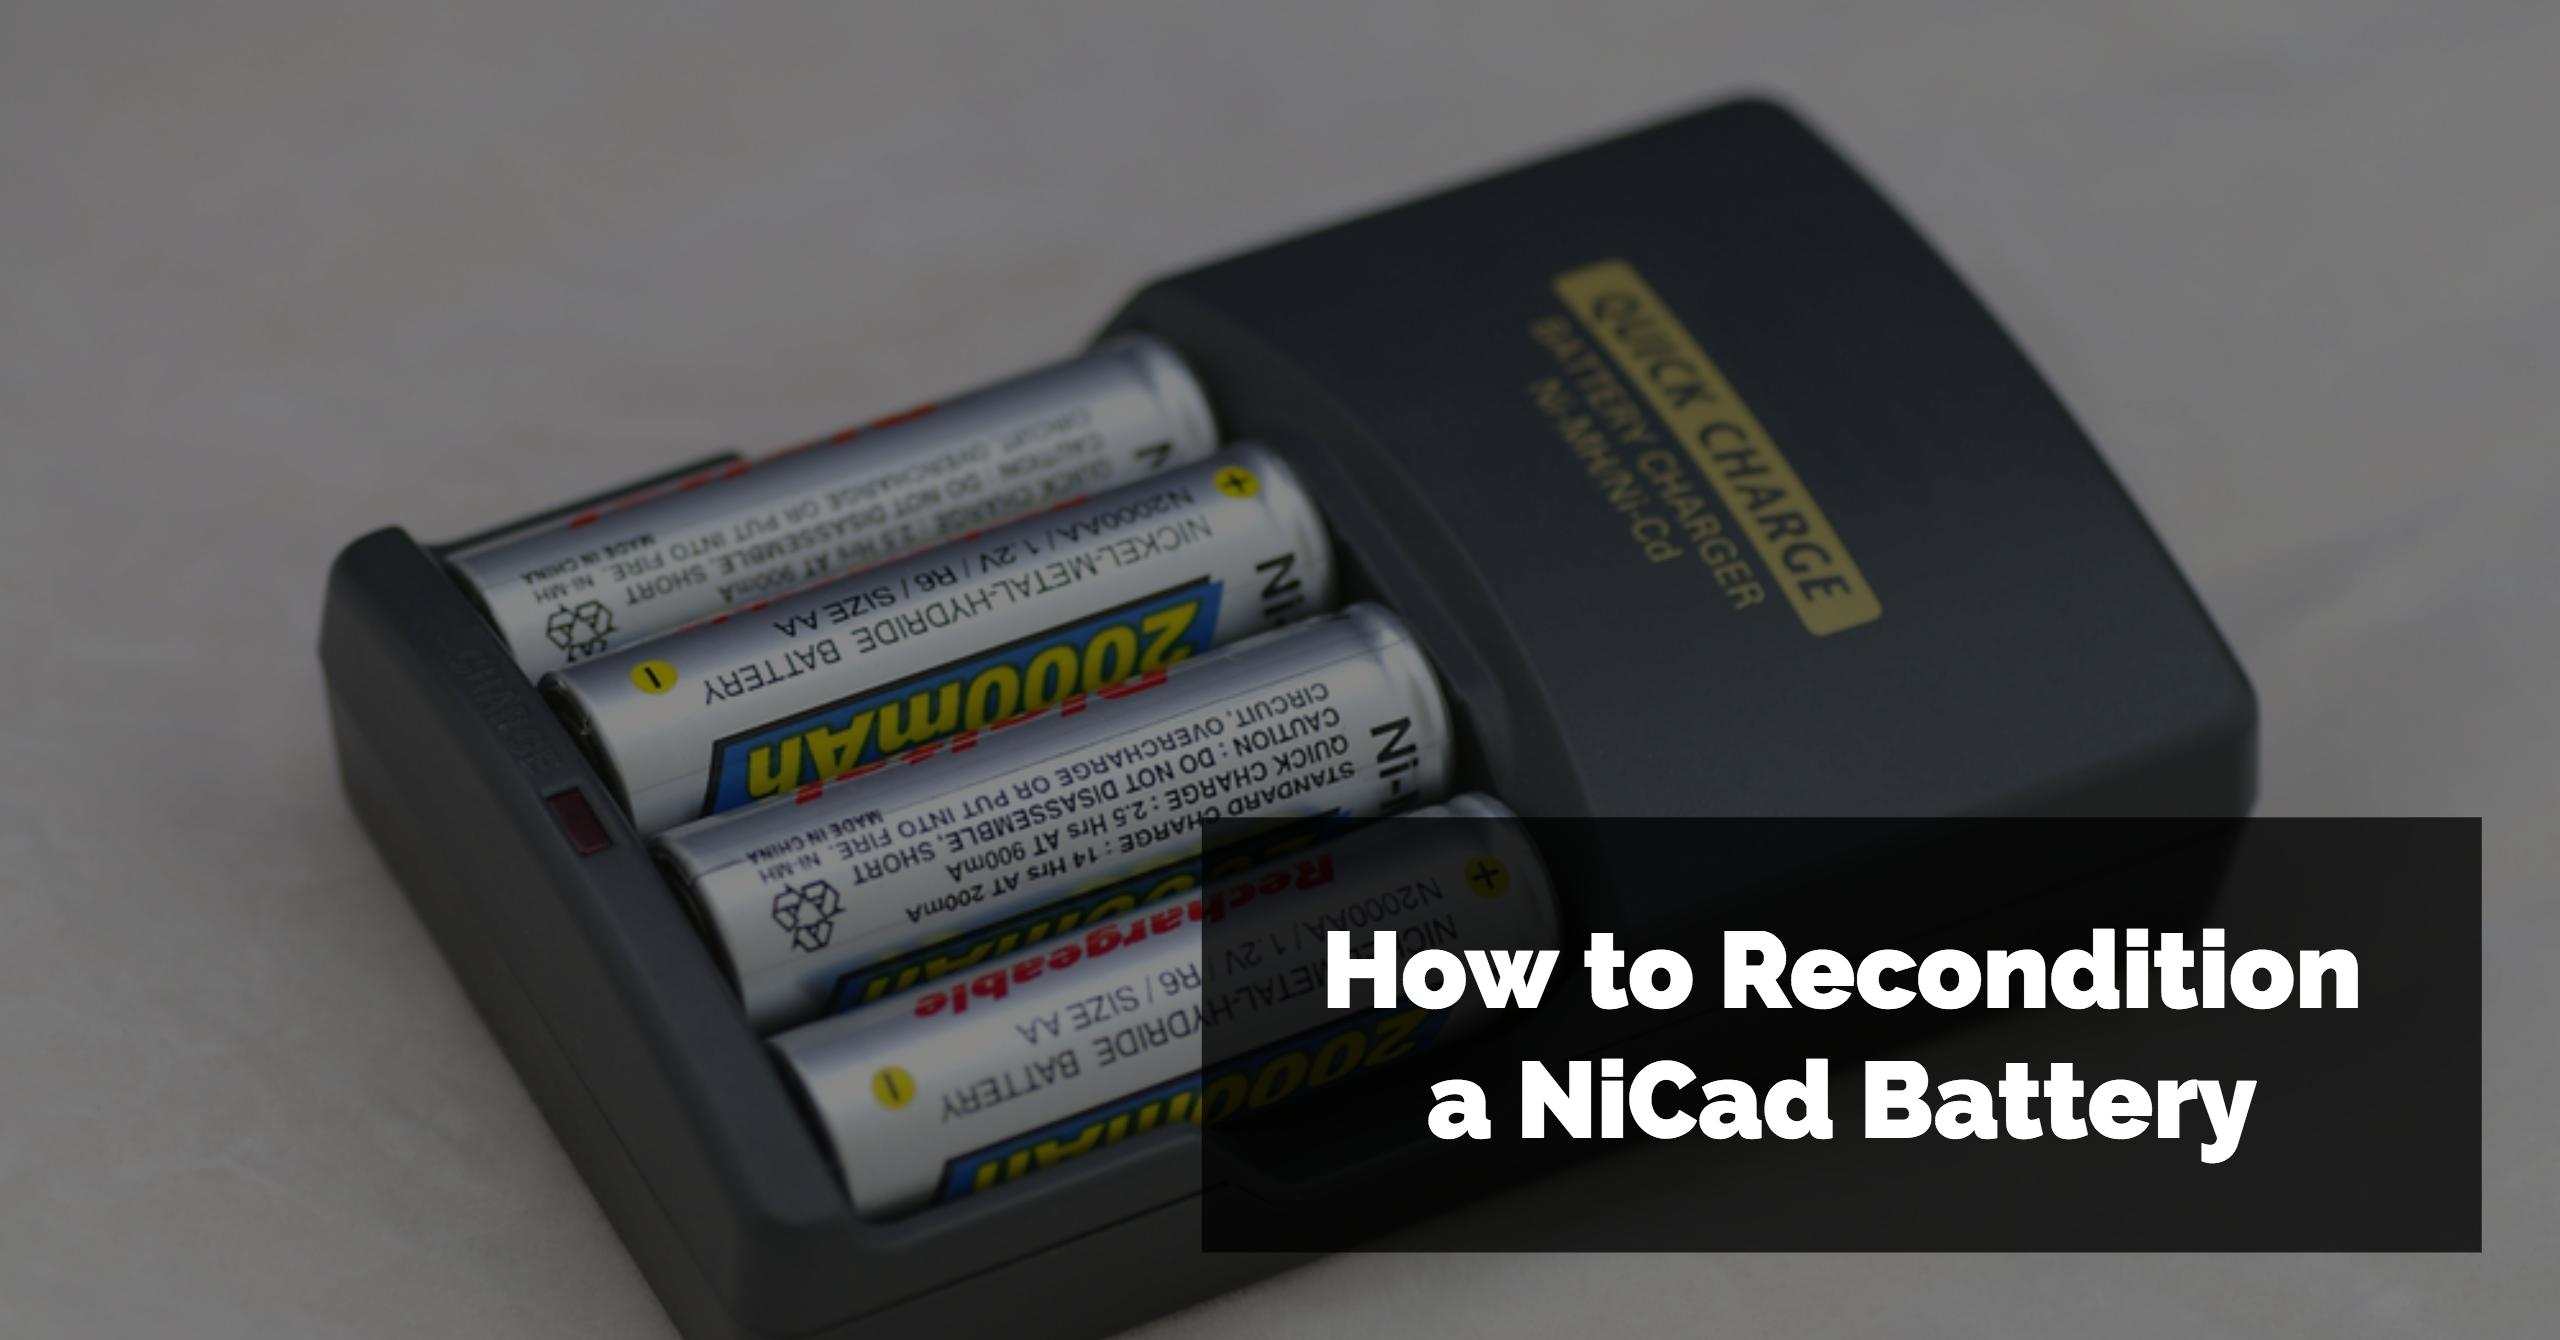 How to recondition nicad batteries